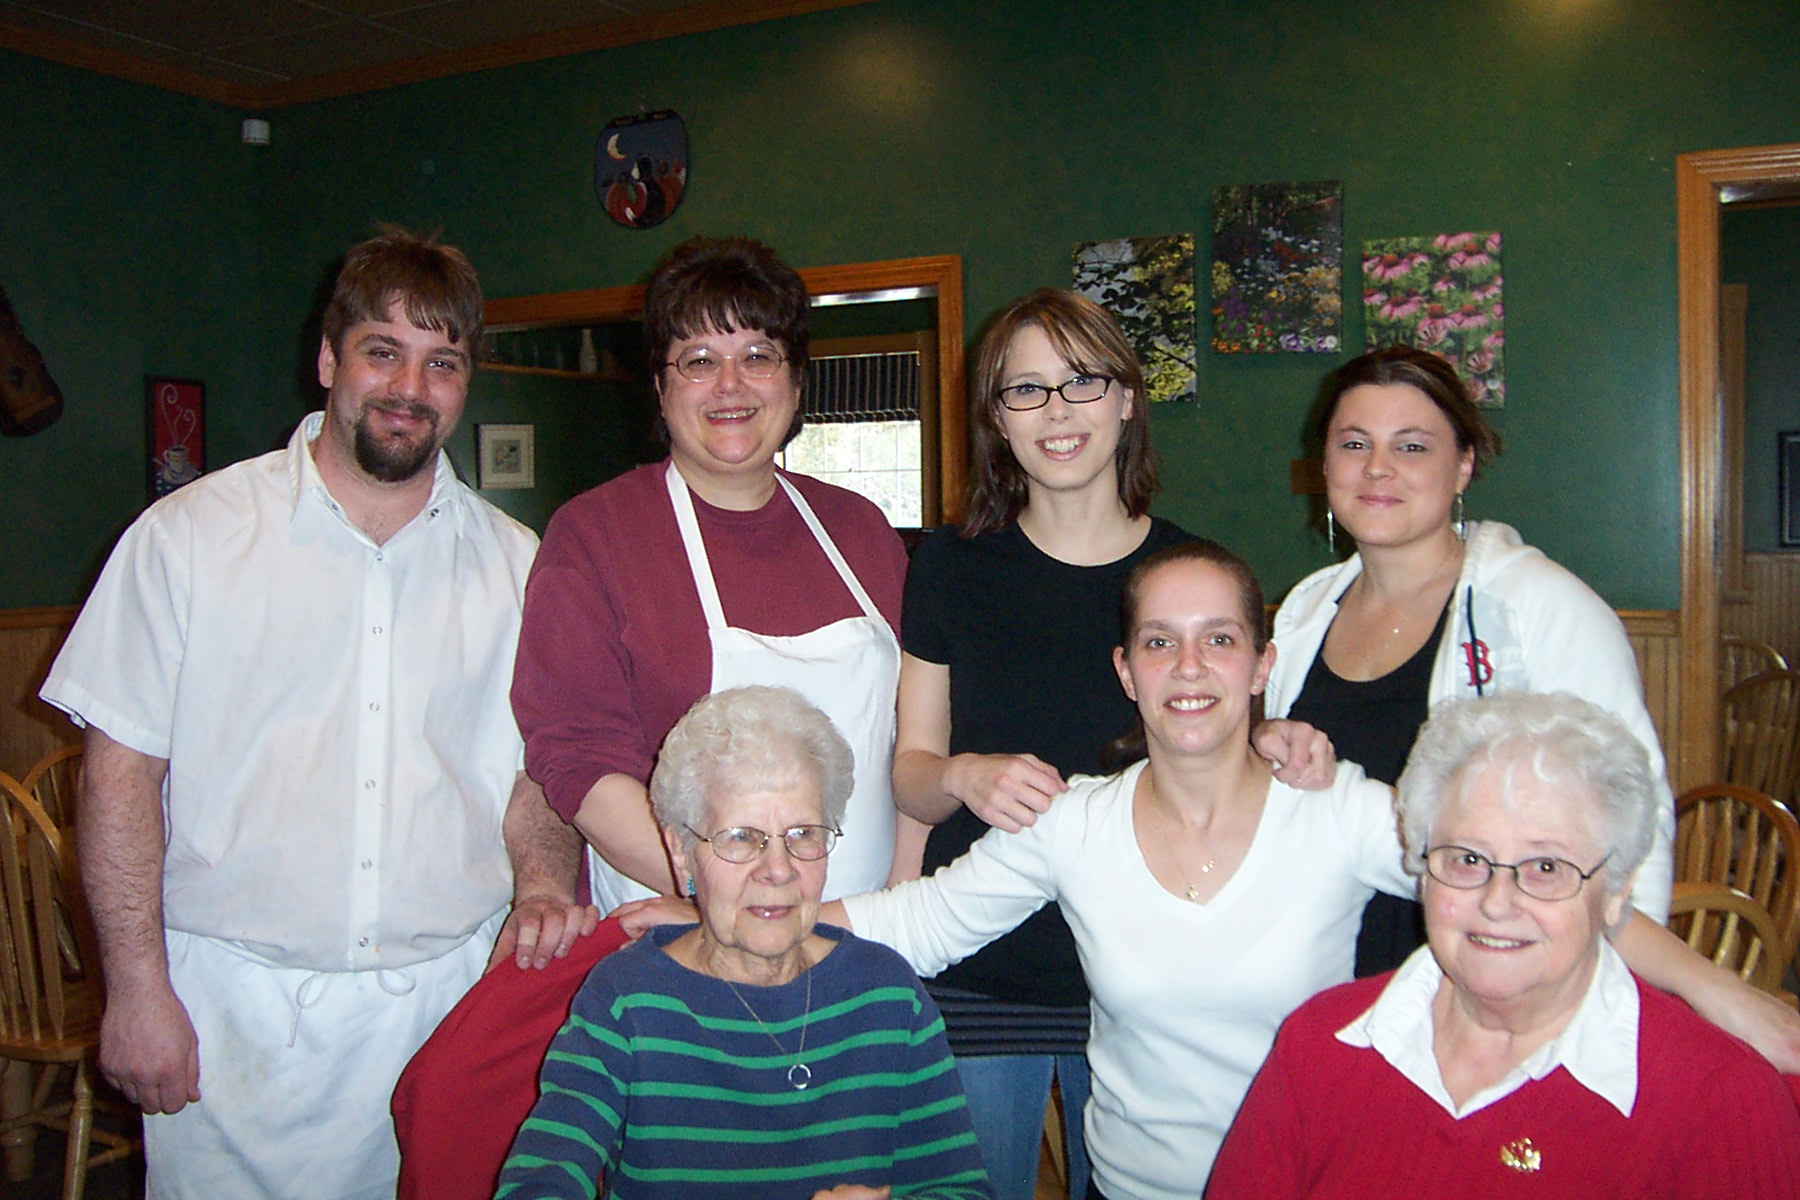 Standing, Chef, Jason Mashteare, Manager, Debbie Flemming, Co-Owner, Jessica Cross, Co-Owner, Amanda Wolcott and Waitress, Amy Ducharme - dcp 7884